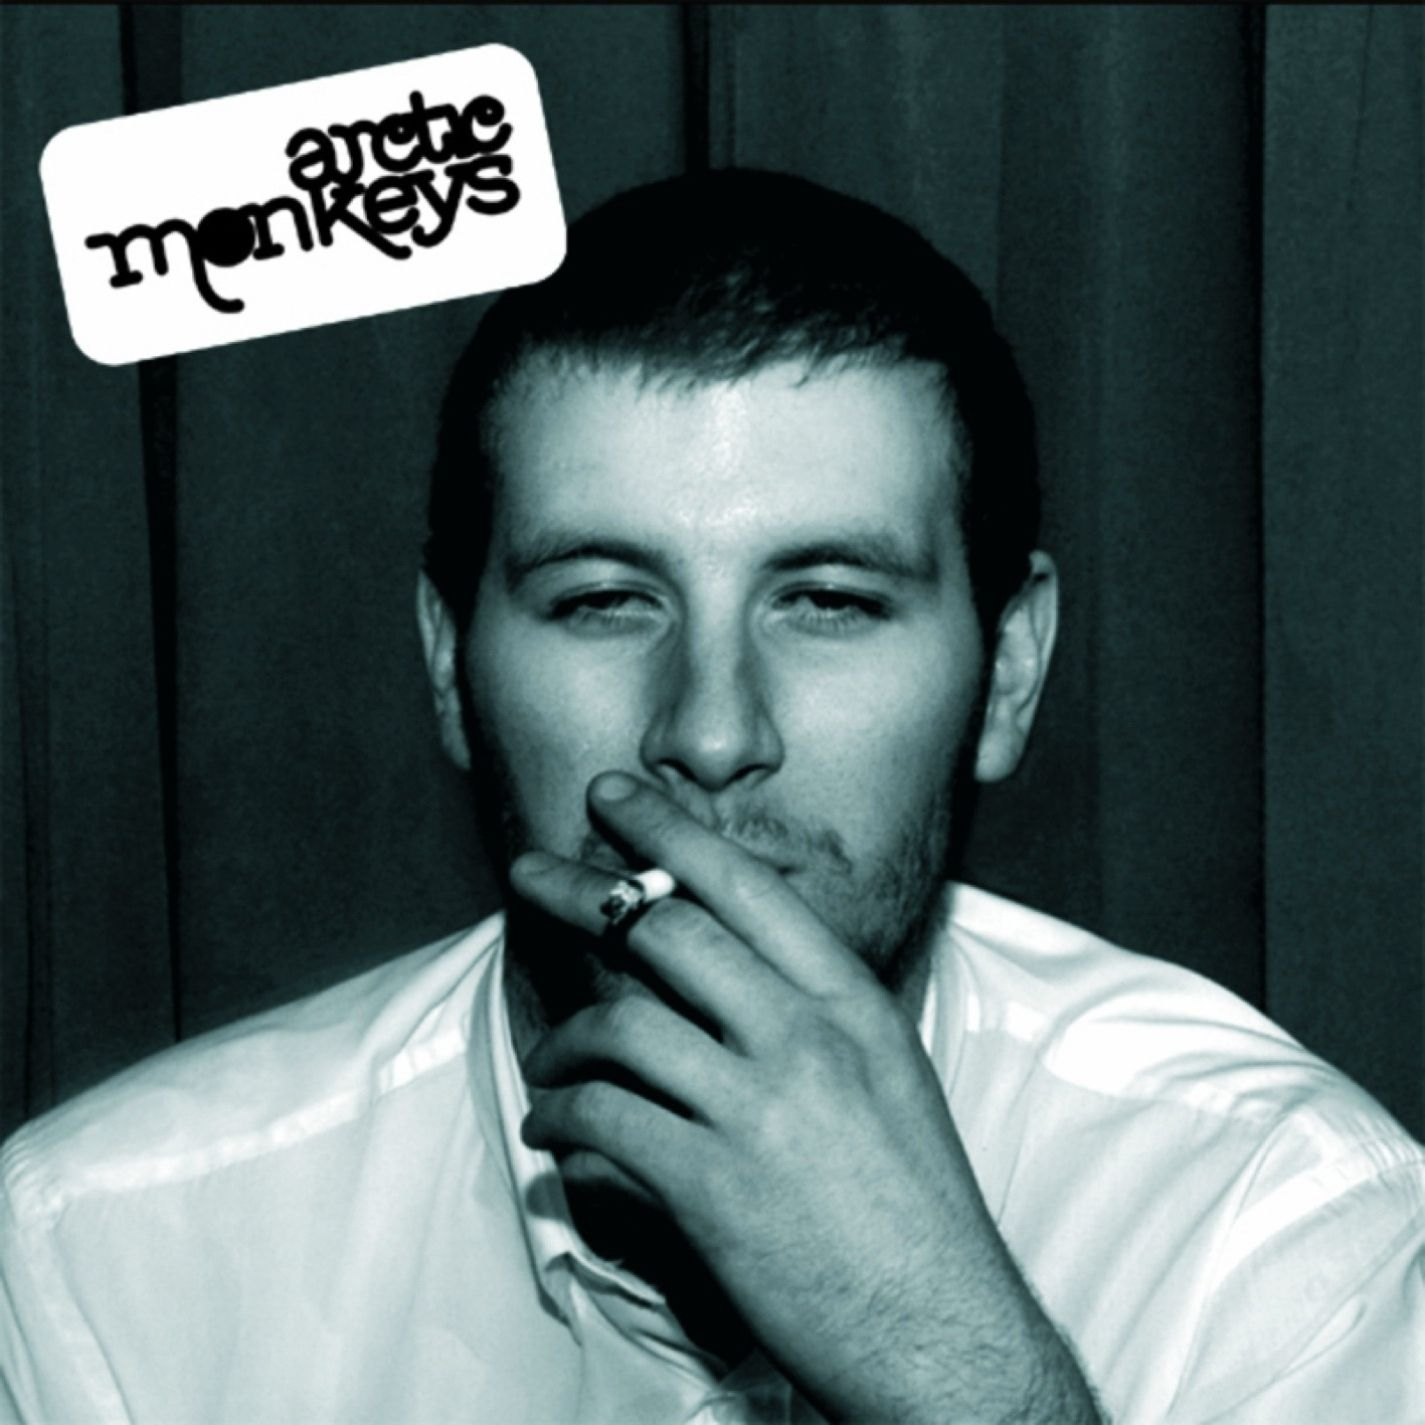 10 years of 'Whatever People Say I Am That's What I'm Not', by the Arctic Monkeys